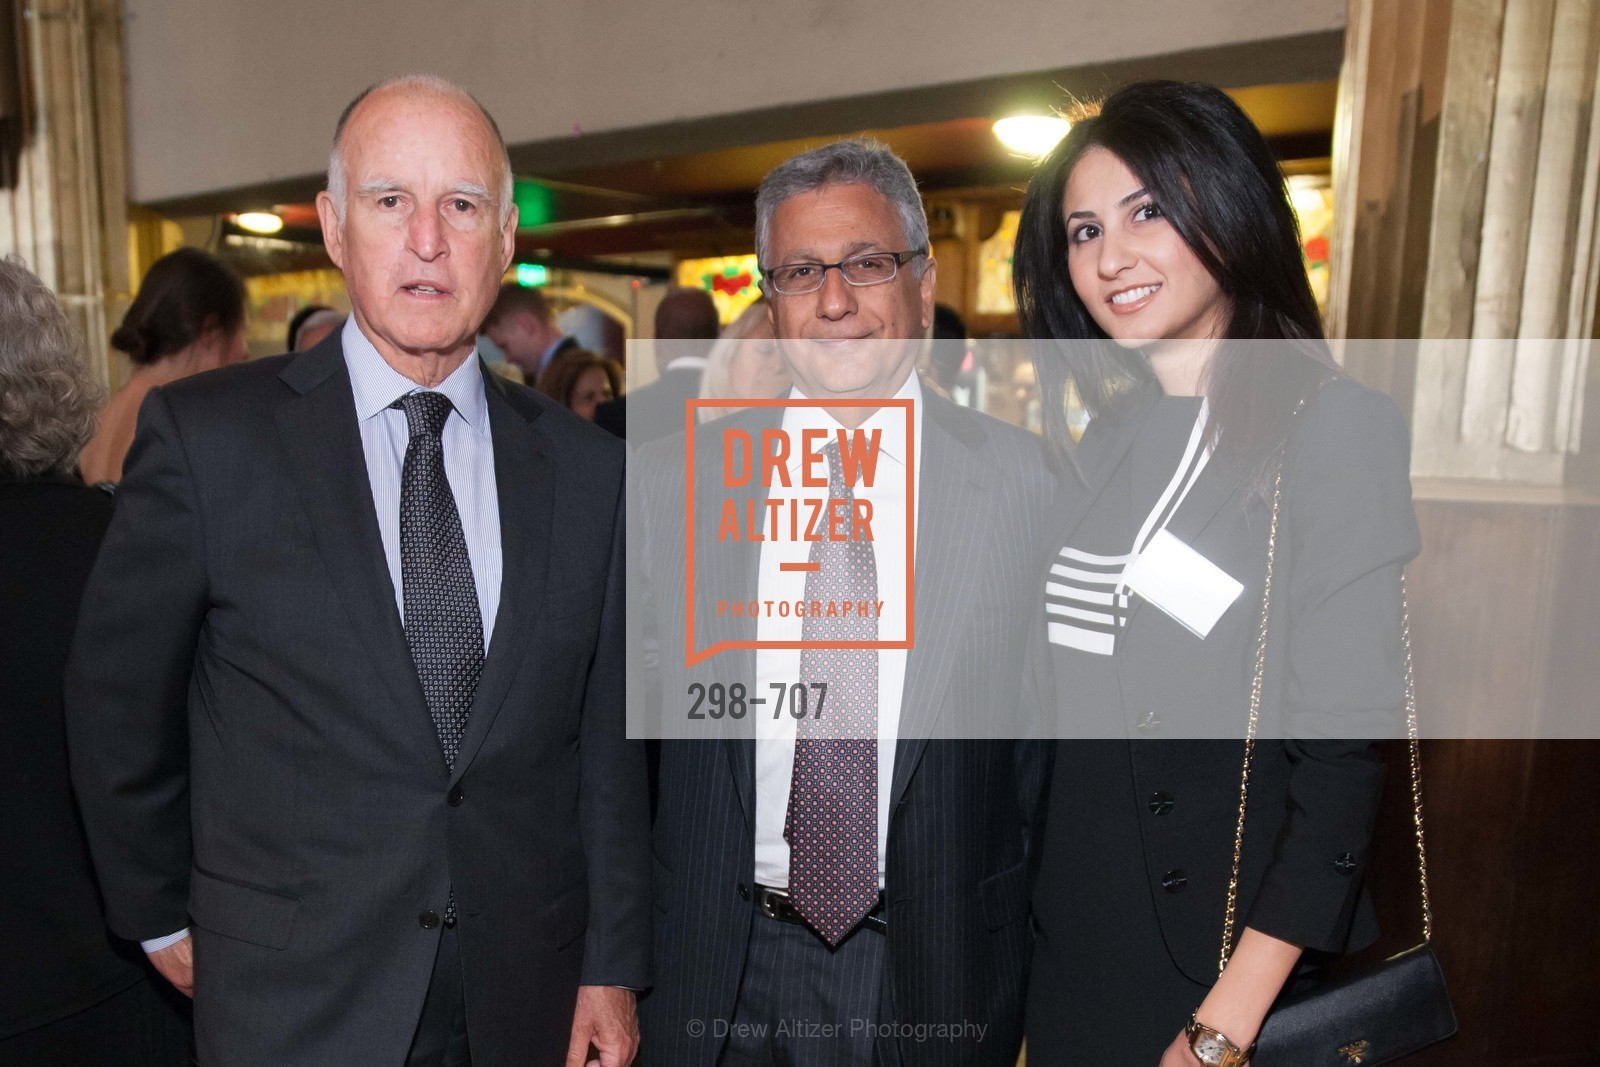 Gov. Jerry Brown, Mori Edgiba, Azin Oujani, OAKLAND SCHOOL FOR THE ARTS Gala 2015 with Governor Jerry Brown, US, May 7th, 2015,Drew Altizer, Drew Altizer Photography, full-service agency, private events, San Francisco photographer, photographer california